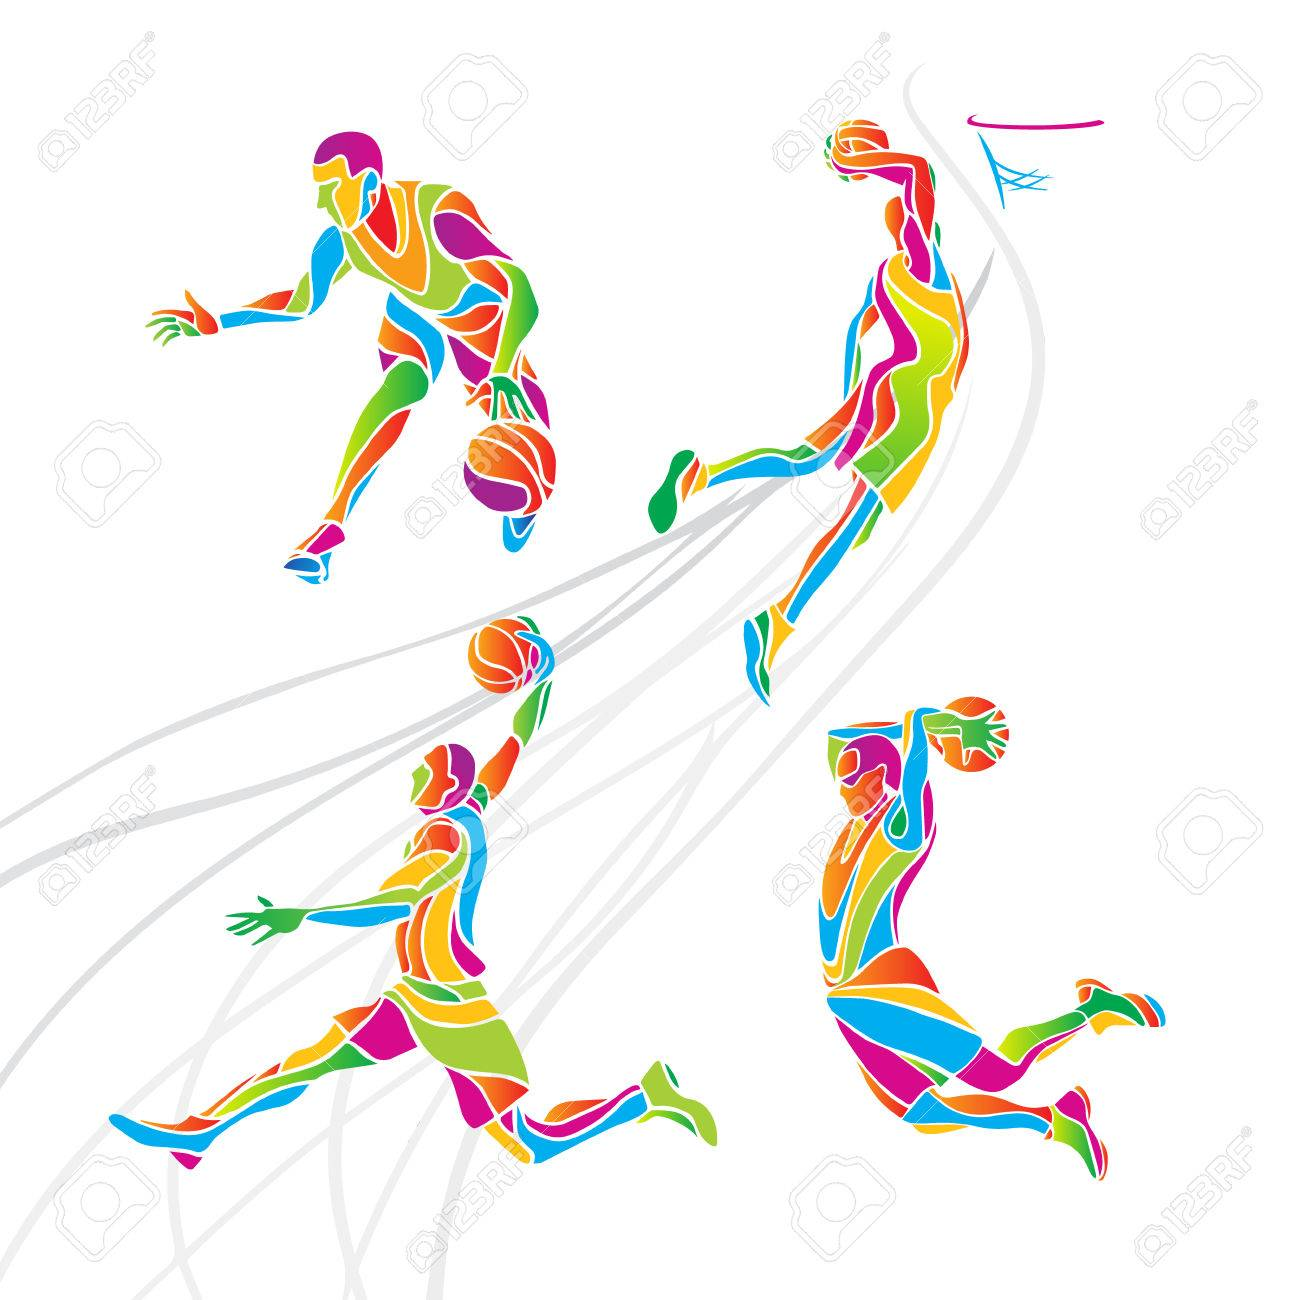 Basketball players collection . Set of 4 abstract multicolor basketball players - 53927561